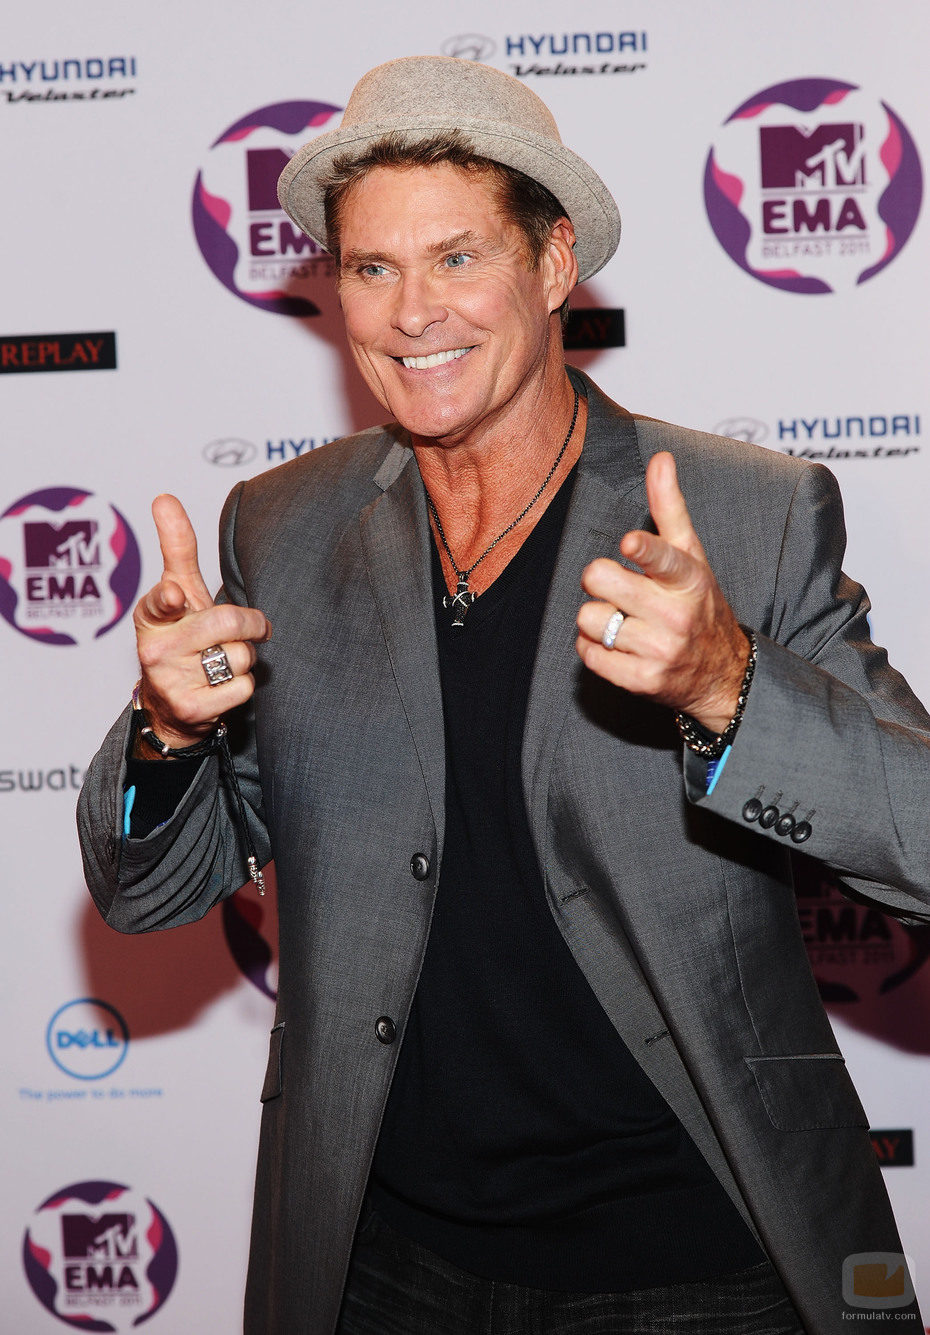 David Hasselhoff en los Europe Music Awards 2011